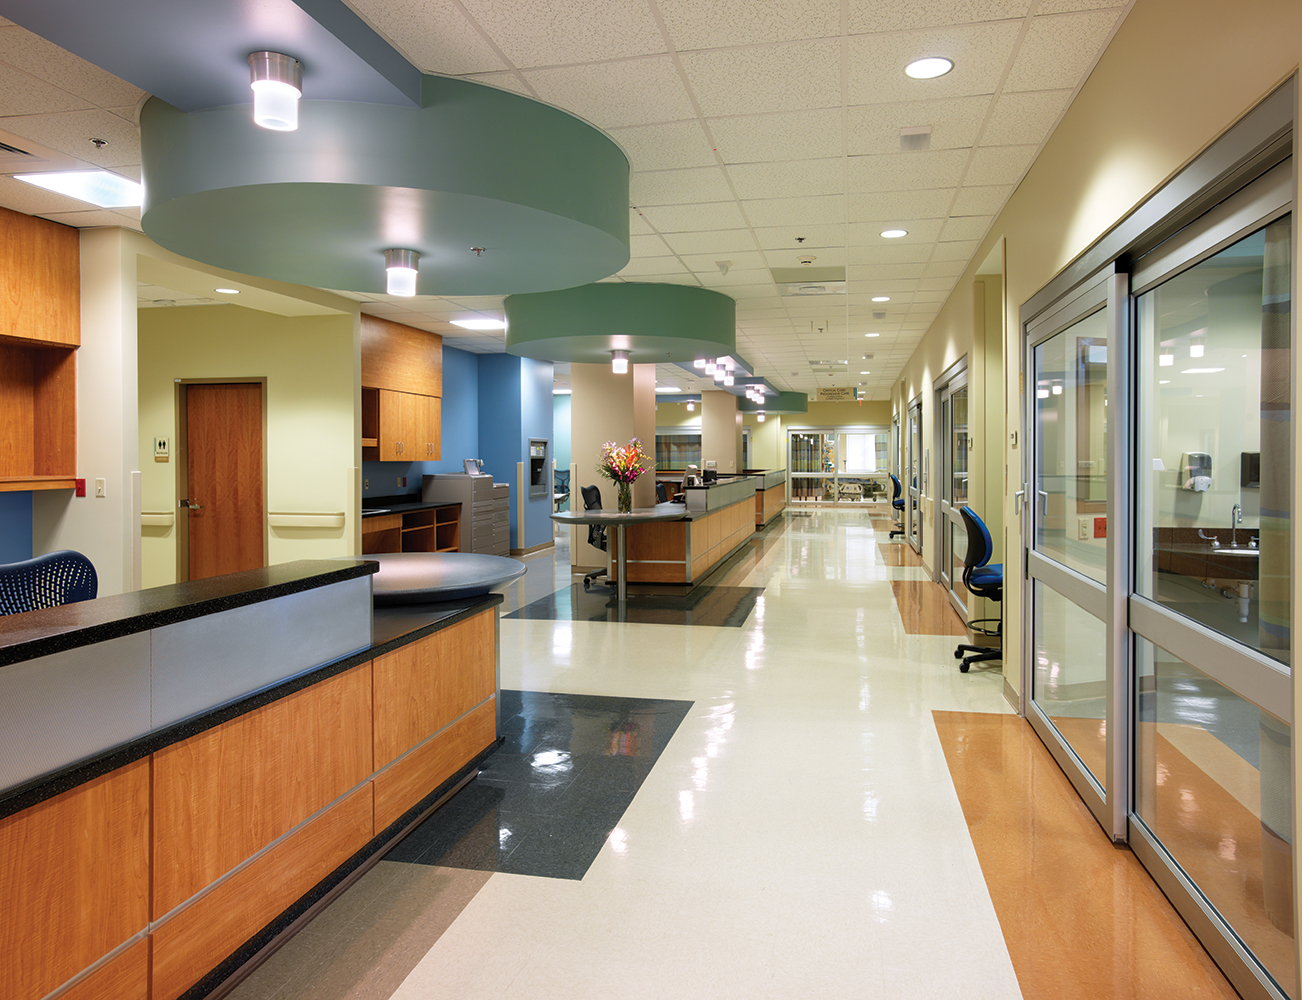 Cane ceiling luminaires in a clean hospital design illuminate a nurse's station.